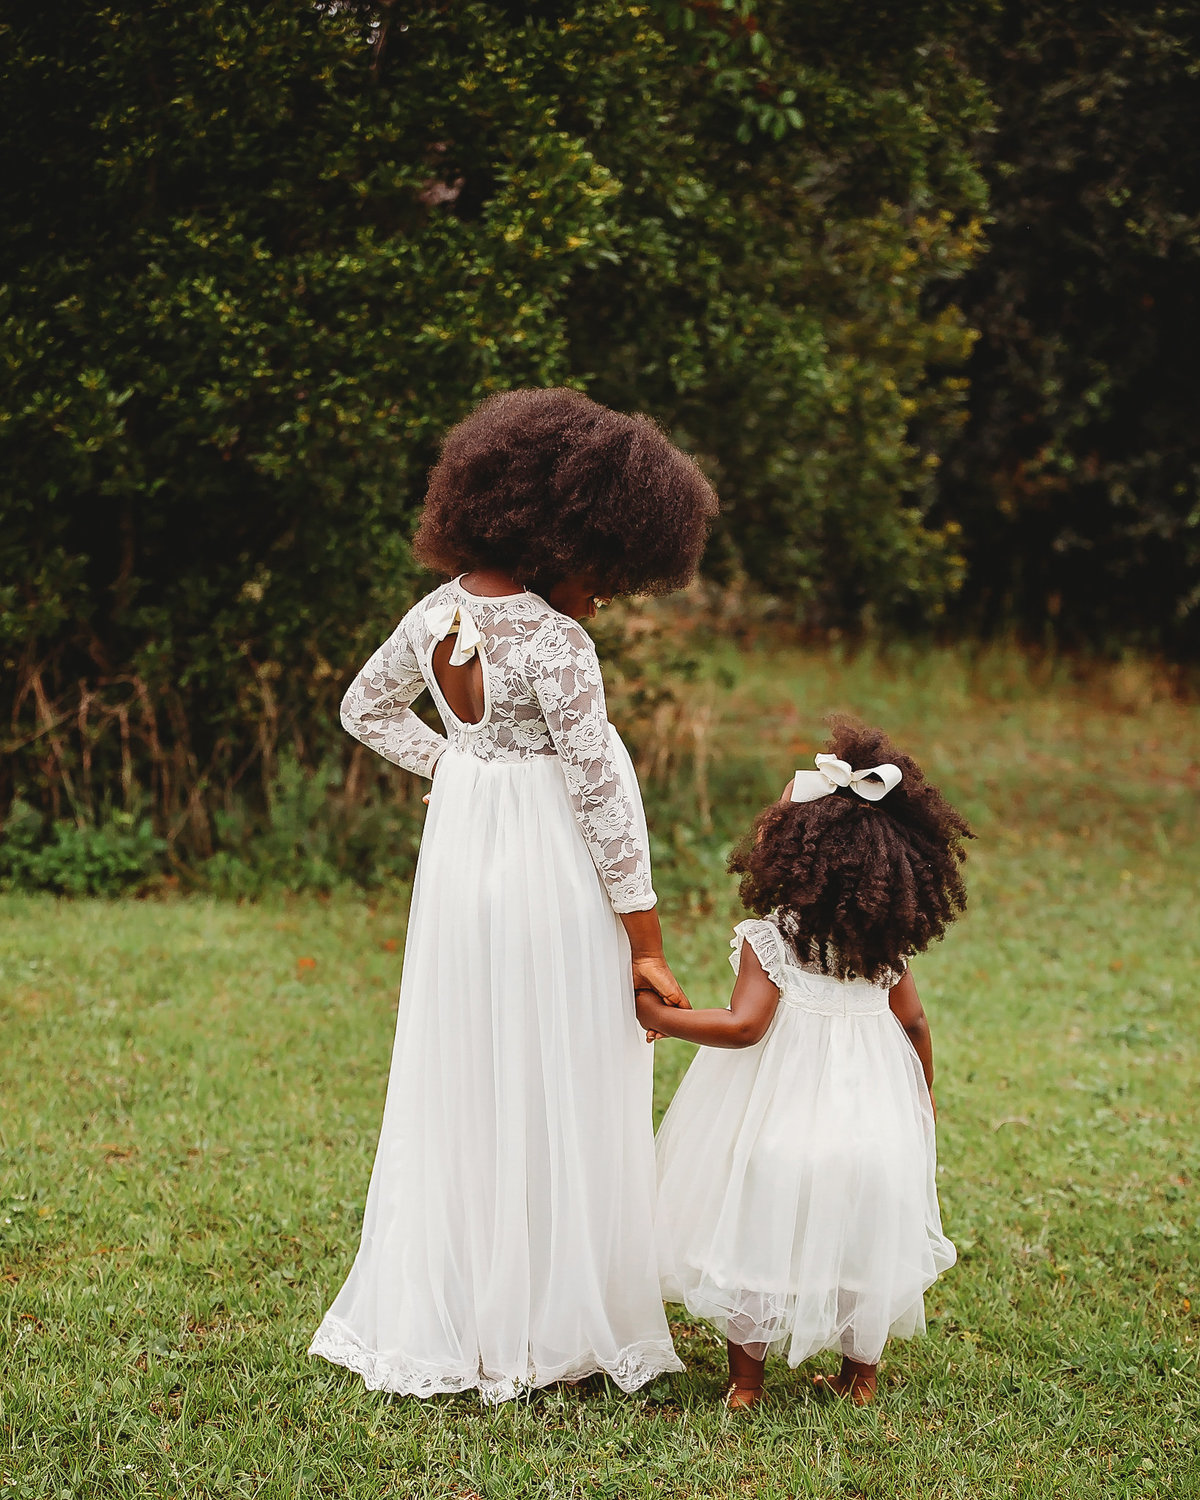 Sisters walk in white dresses, stop and look at each other